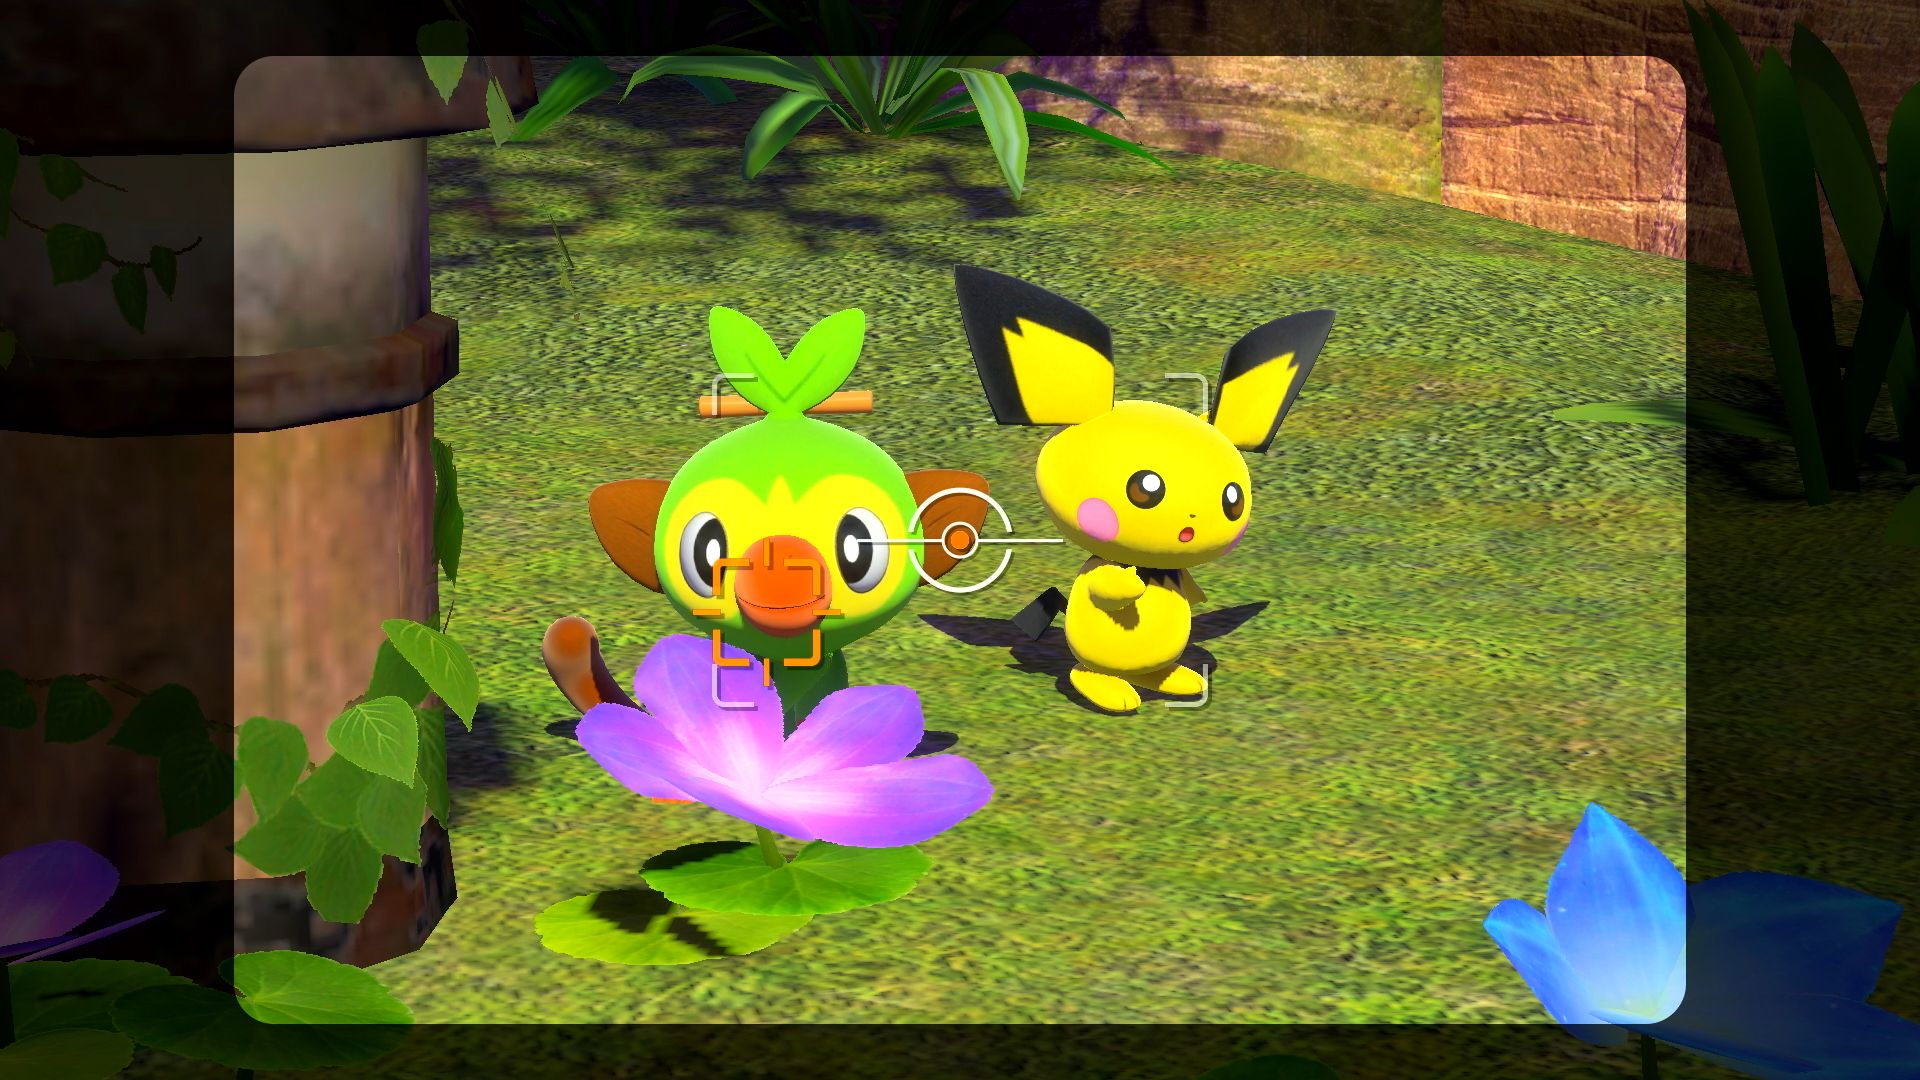 New Pokemon Snap Grookey, Pichu - Nintendo Switch